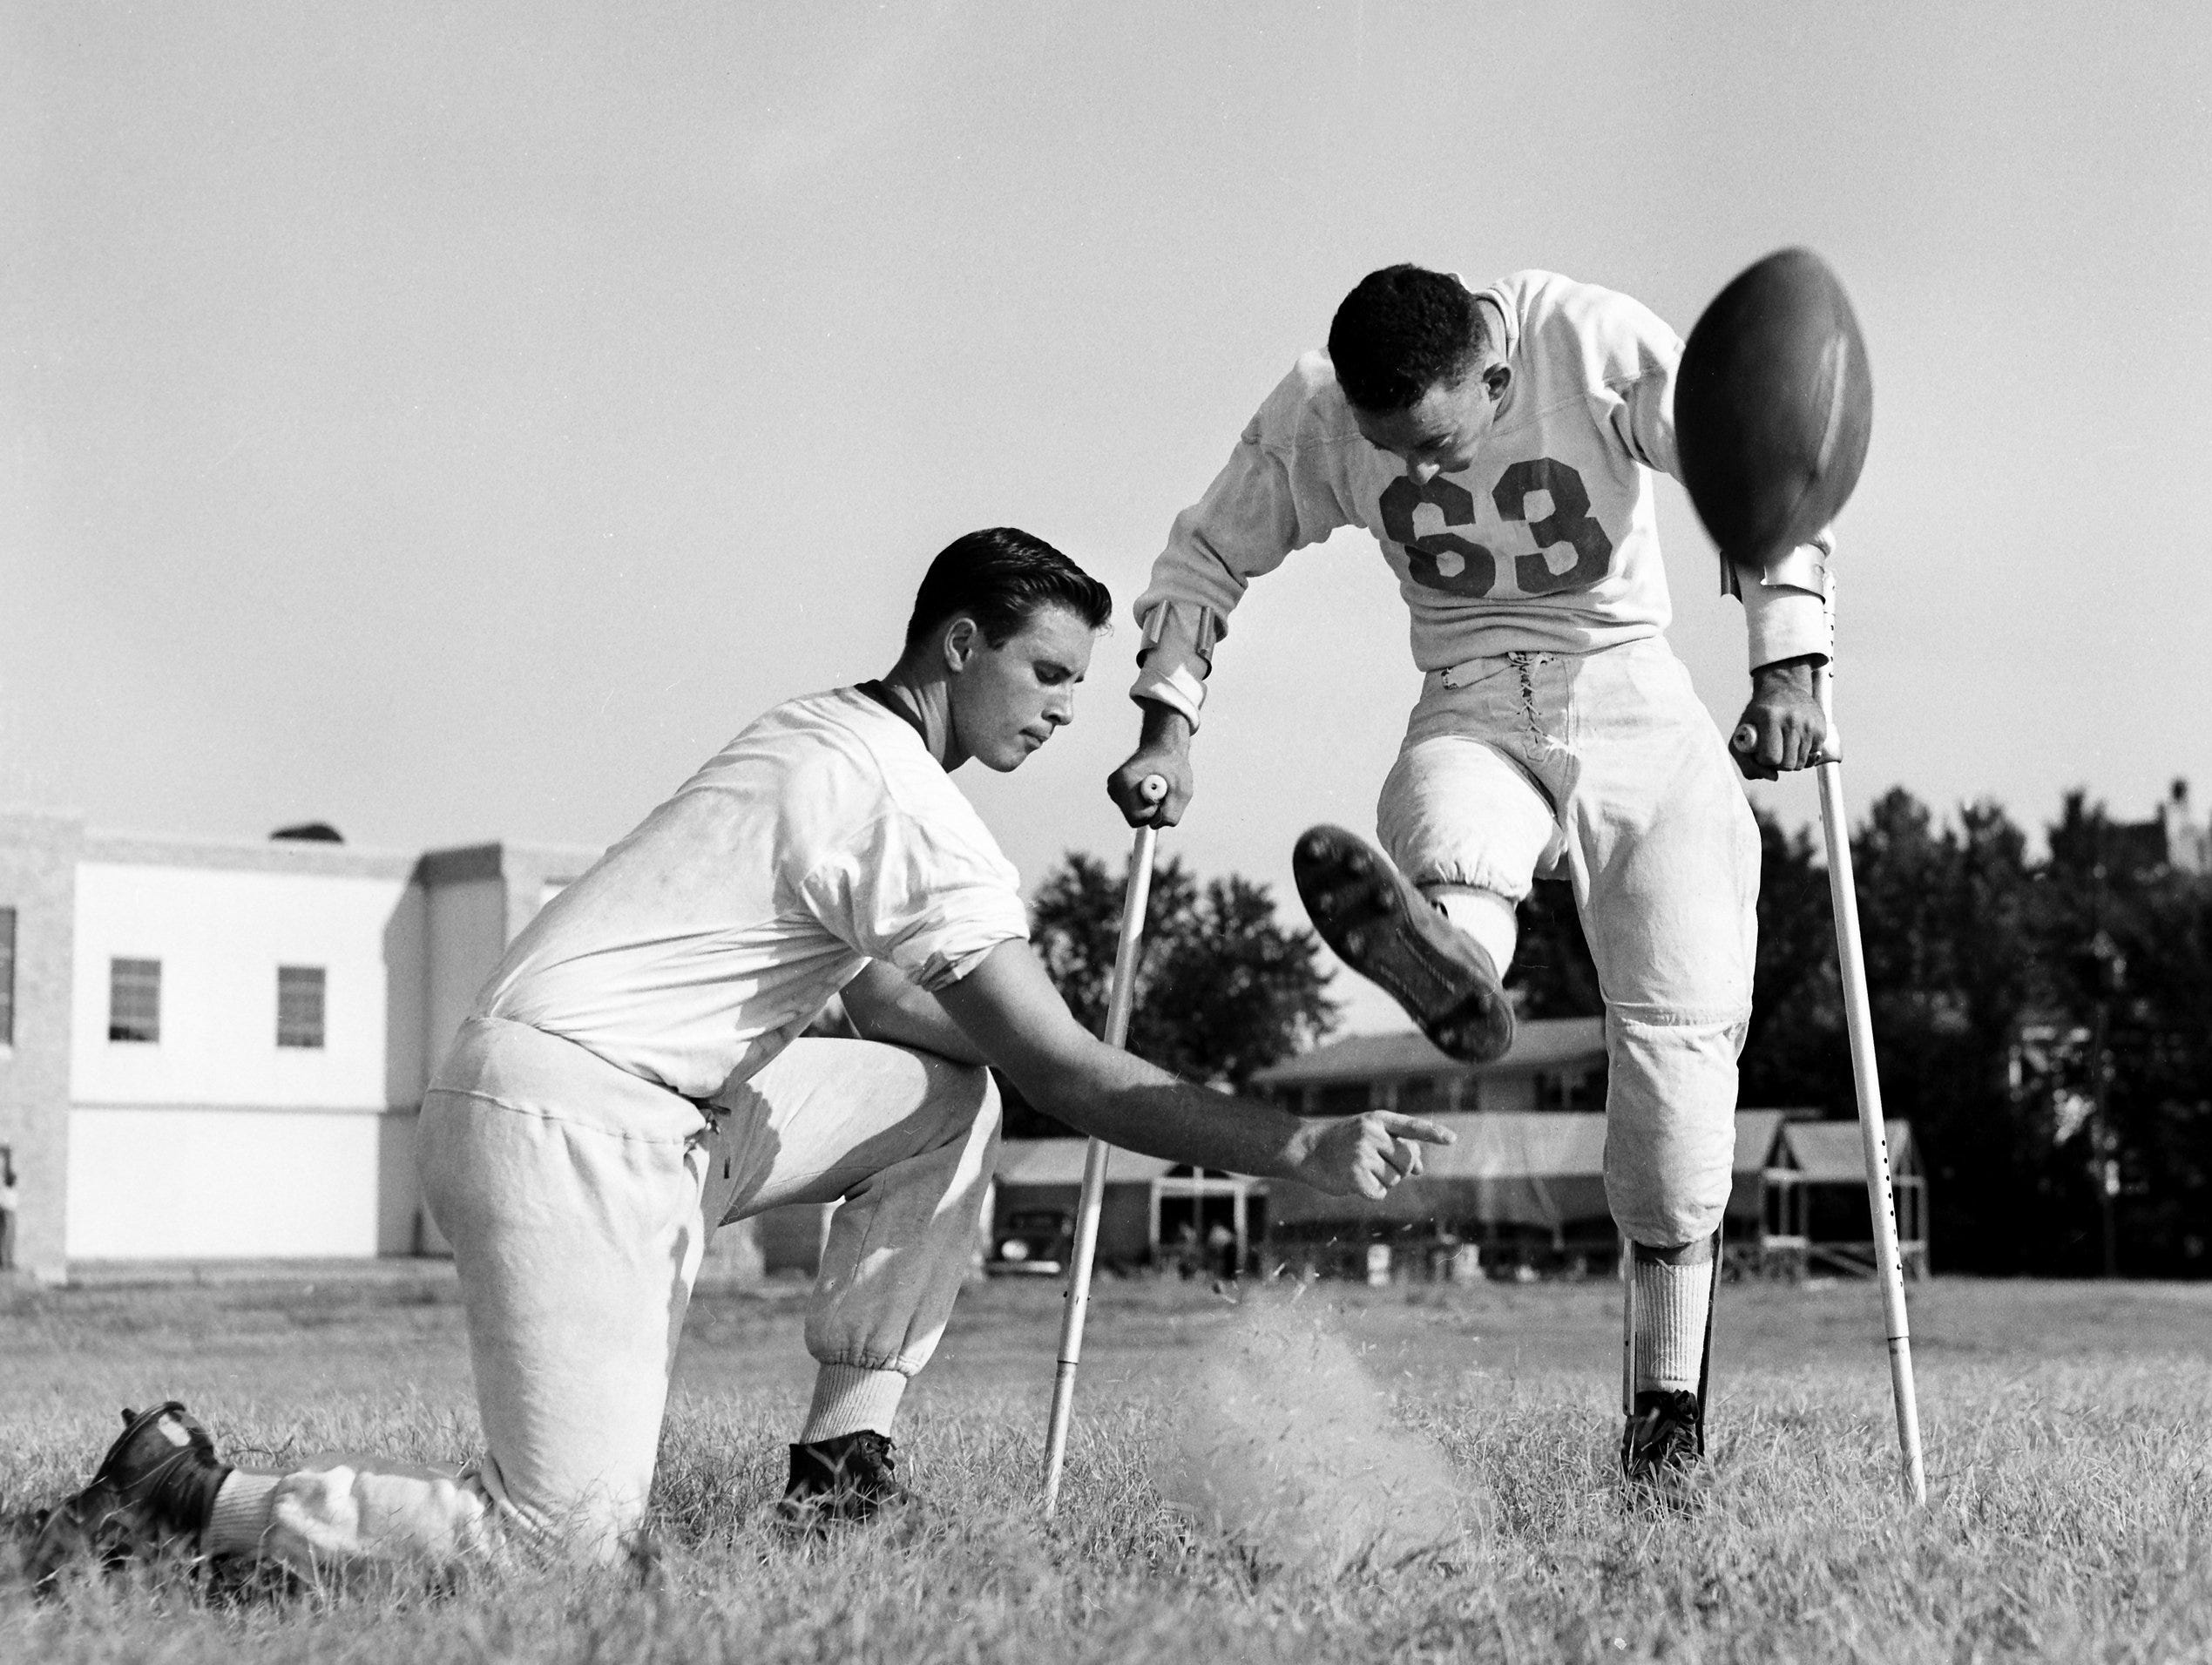 Billy Gillespie, stricken with polio before football season in 1952, is back in uniform the first week of September 1953.  With the aid of crutches and braces on his legs, Billy is out every afternoon practicing extra points at Catholic High.  Here Billy boots one as George Wade holds.